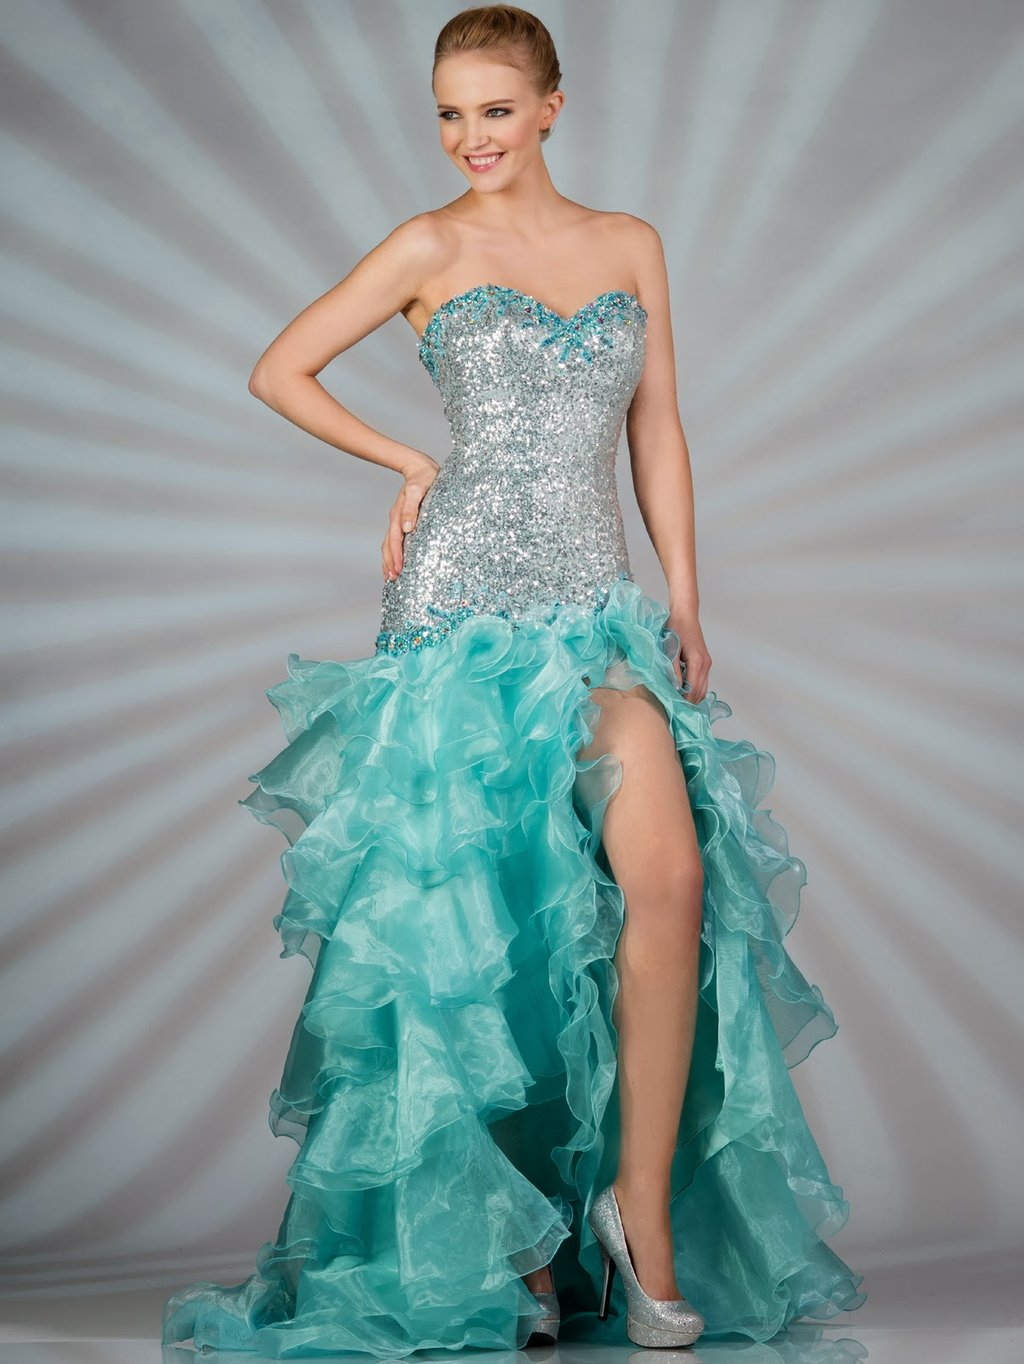 Dressybridal 2014 Prom Color Trend Stunning Aqua Blue   Bedroom Ideas For Teen Girls